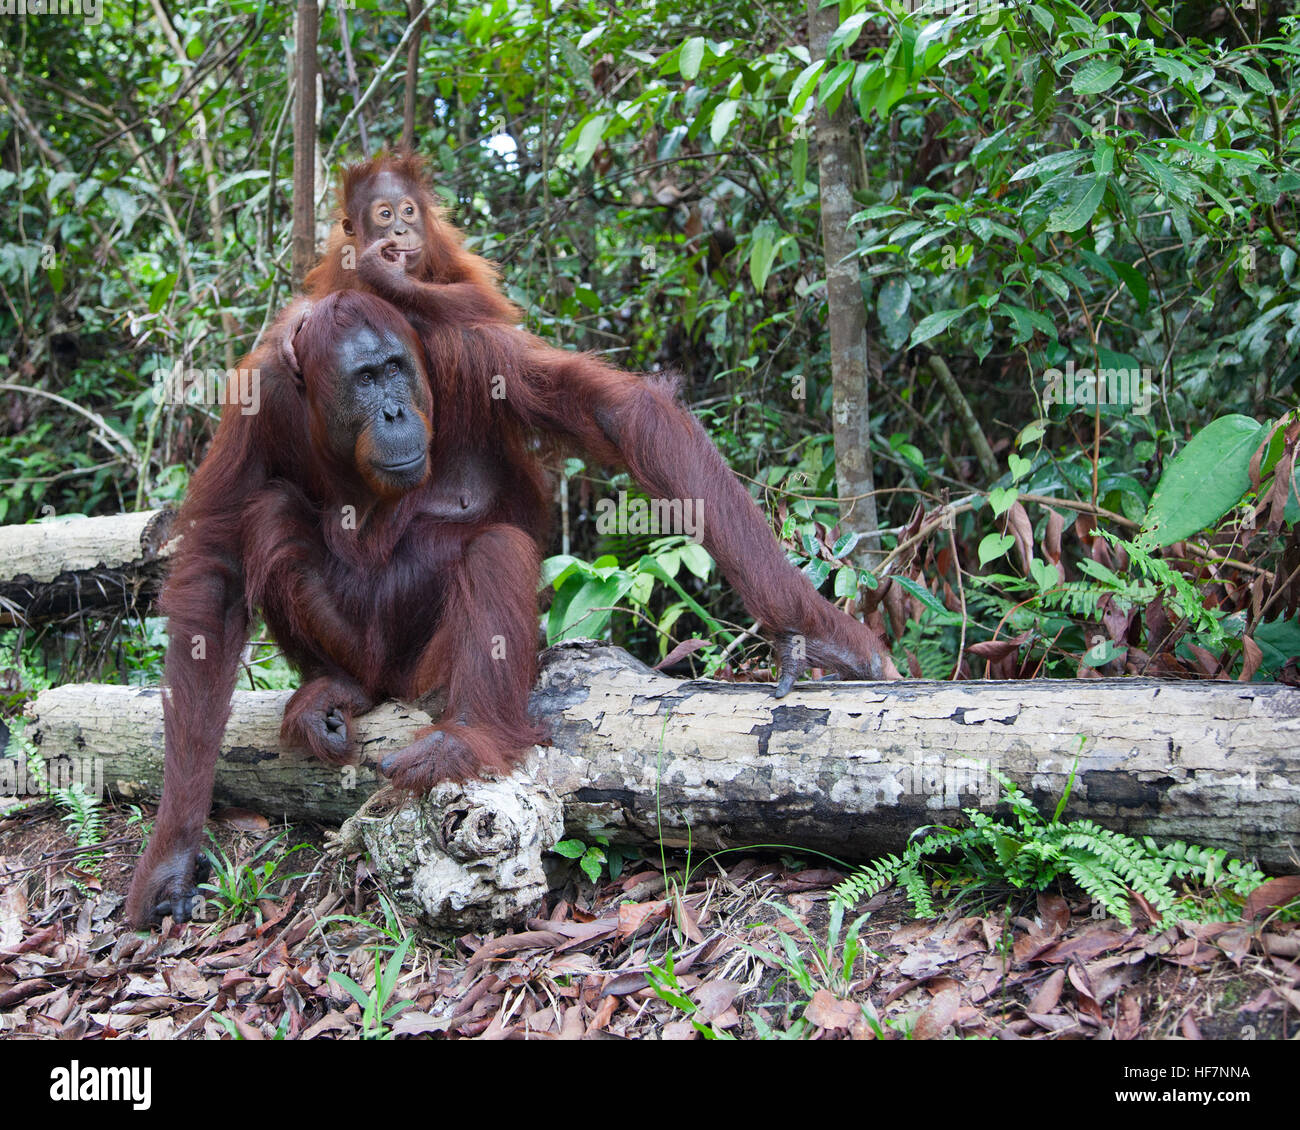 Wild Bornean Orangutan (Pongo pygmaeus) mother sitting on a log in forest with two year old baby clinging to her - Stock Image